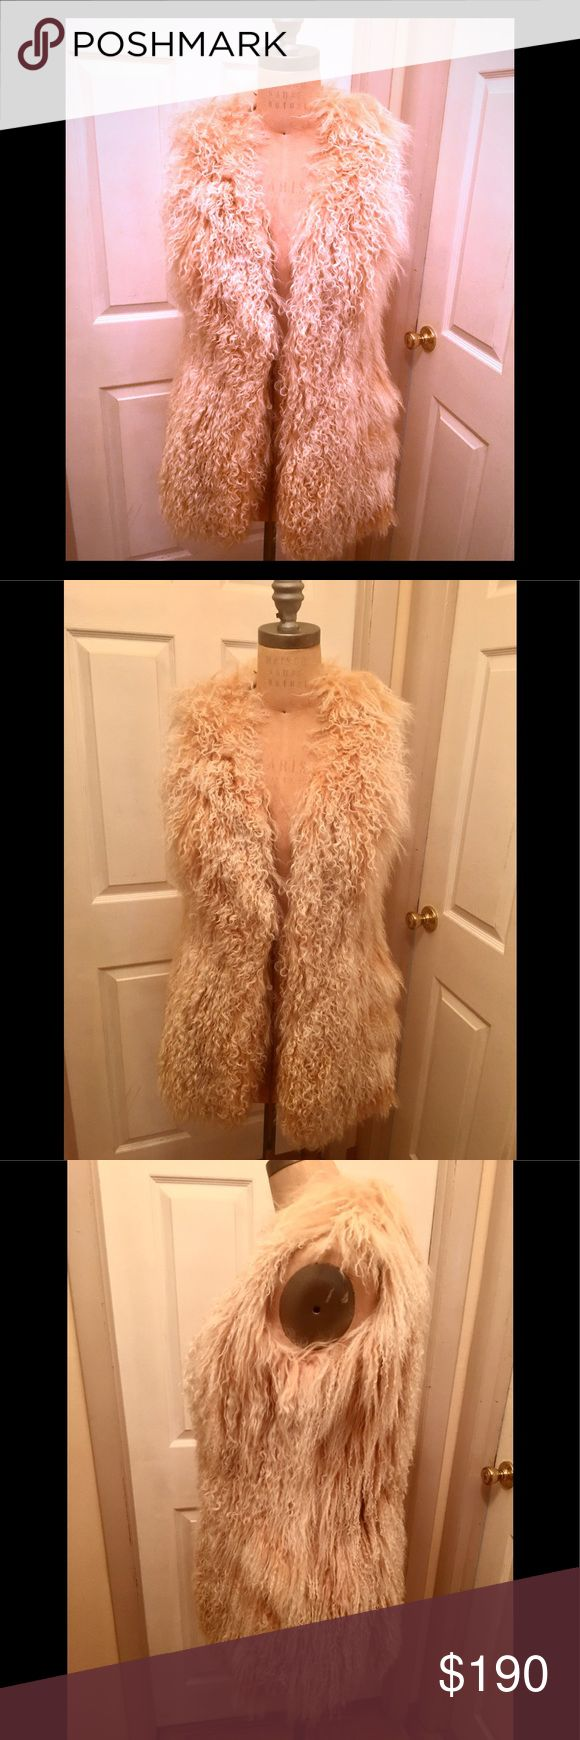 Like new LaRok Mangolian lamb fur vest w/suede Worn once. Like new, only selling because I just purchased the long Misha fur vest I have listed, they are very similar. Length 32inch long roomy. Lined w/silk & accented in brown suede, w/ hook & eye closure; 2 suede string accents hanging down w/ suede tassels for a 70s vibe. Great piece for spring. Wear w/jeans & crop top. I wore out w/see-through mesh turtle neck & leather skirt with booties out. Amazing piece! Great alternative if you want…